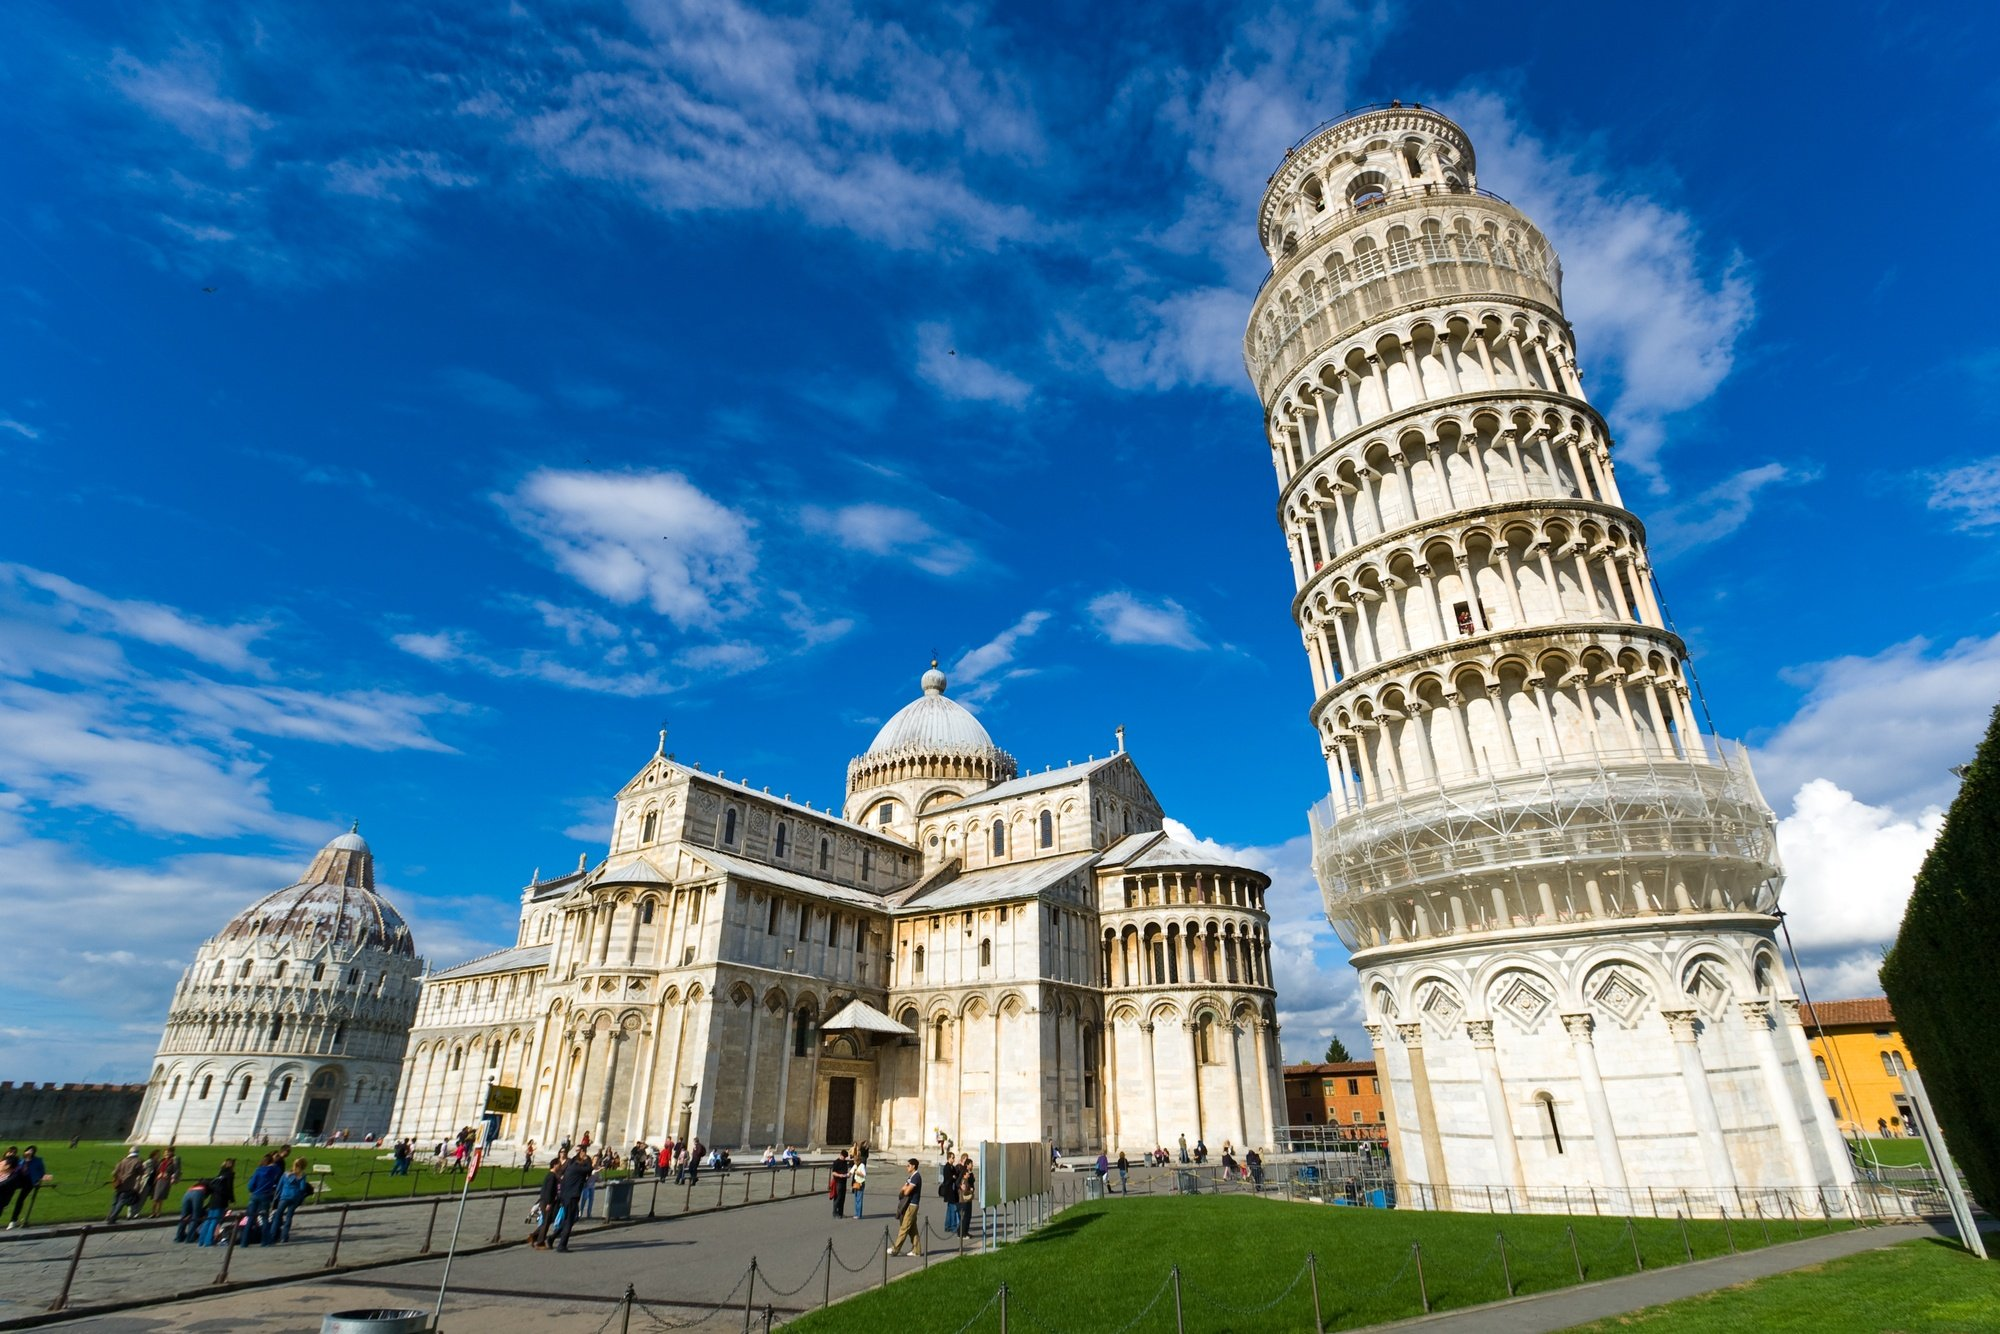 Piazza dei Miracoli, home to the Leaning Tower, the Pisa Cathedral and the Pisa Baptistry